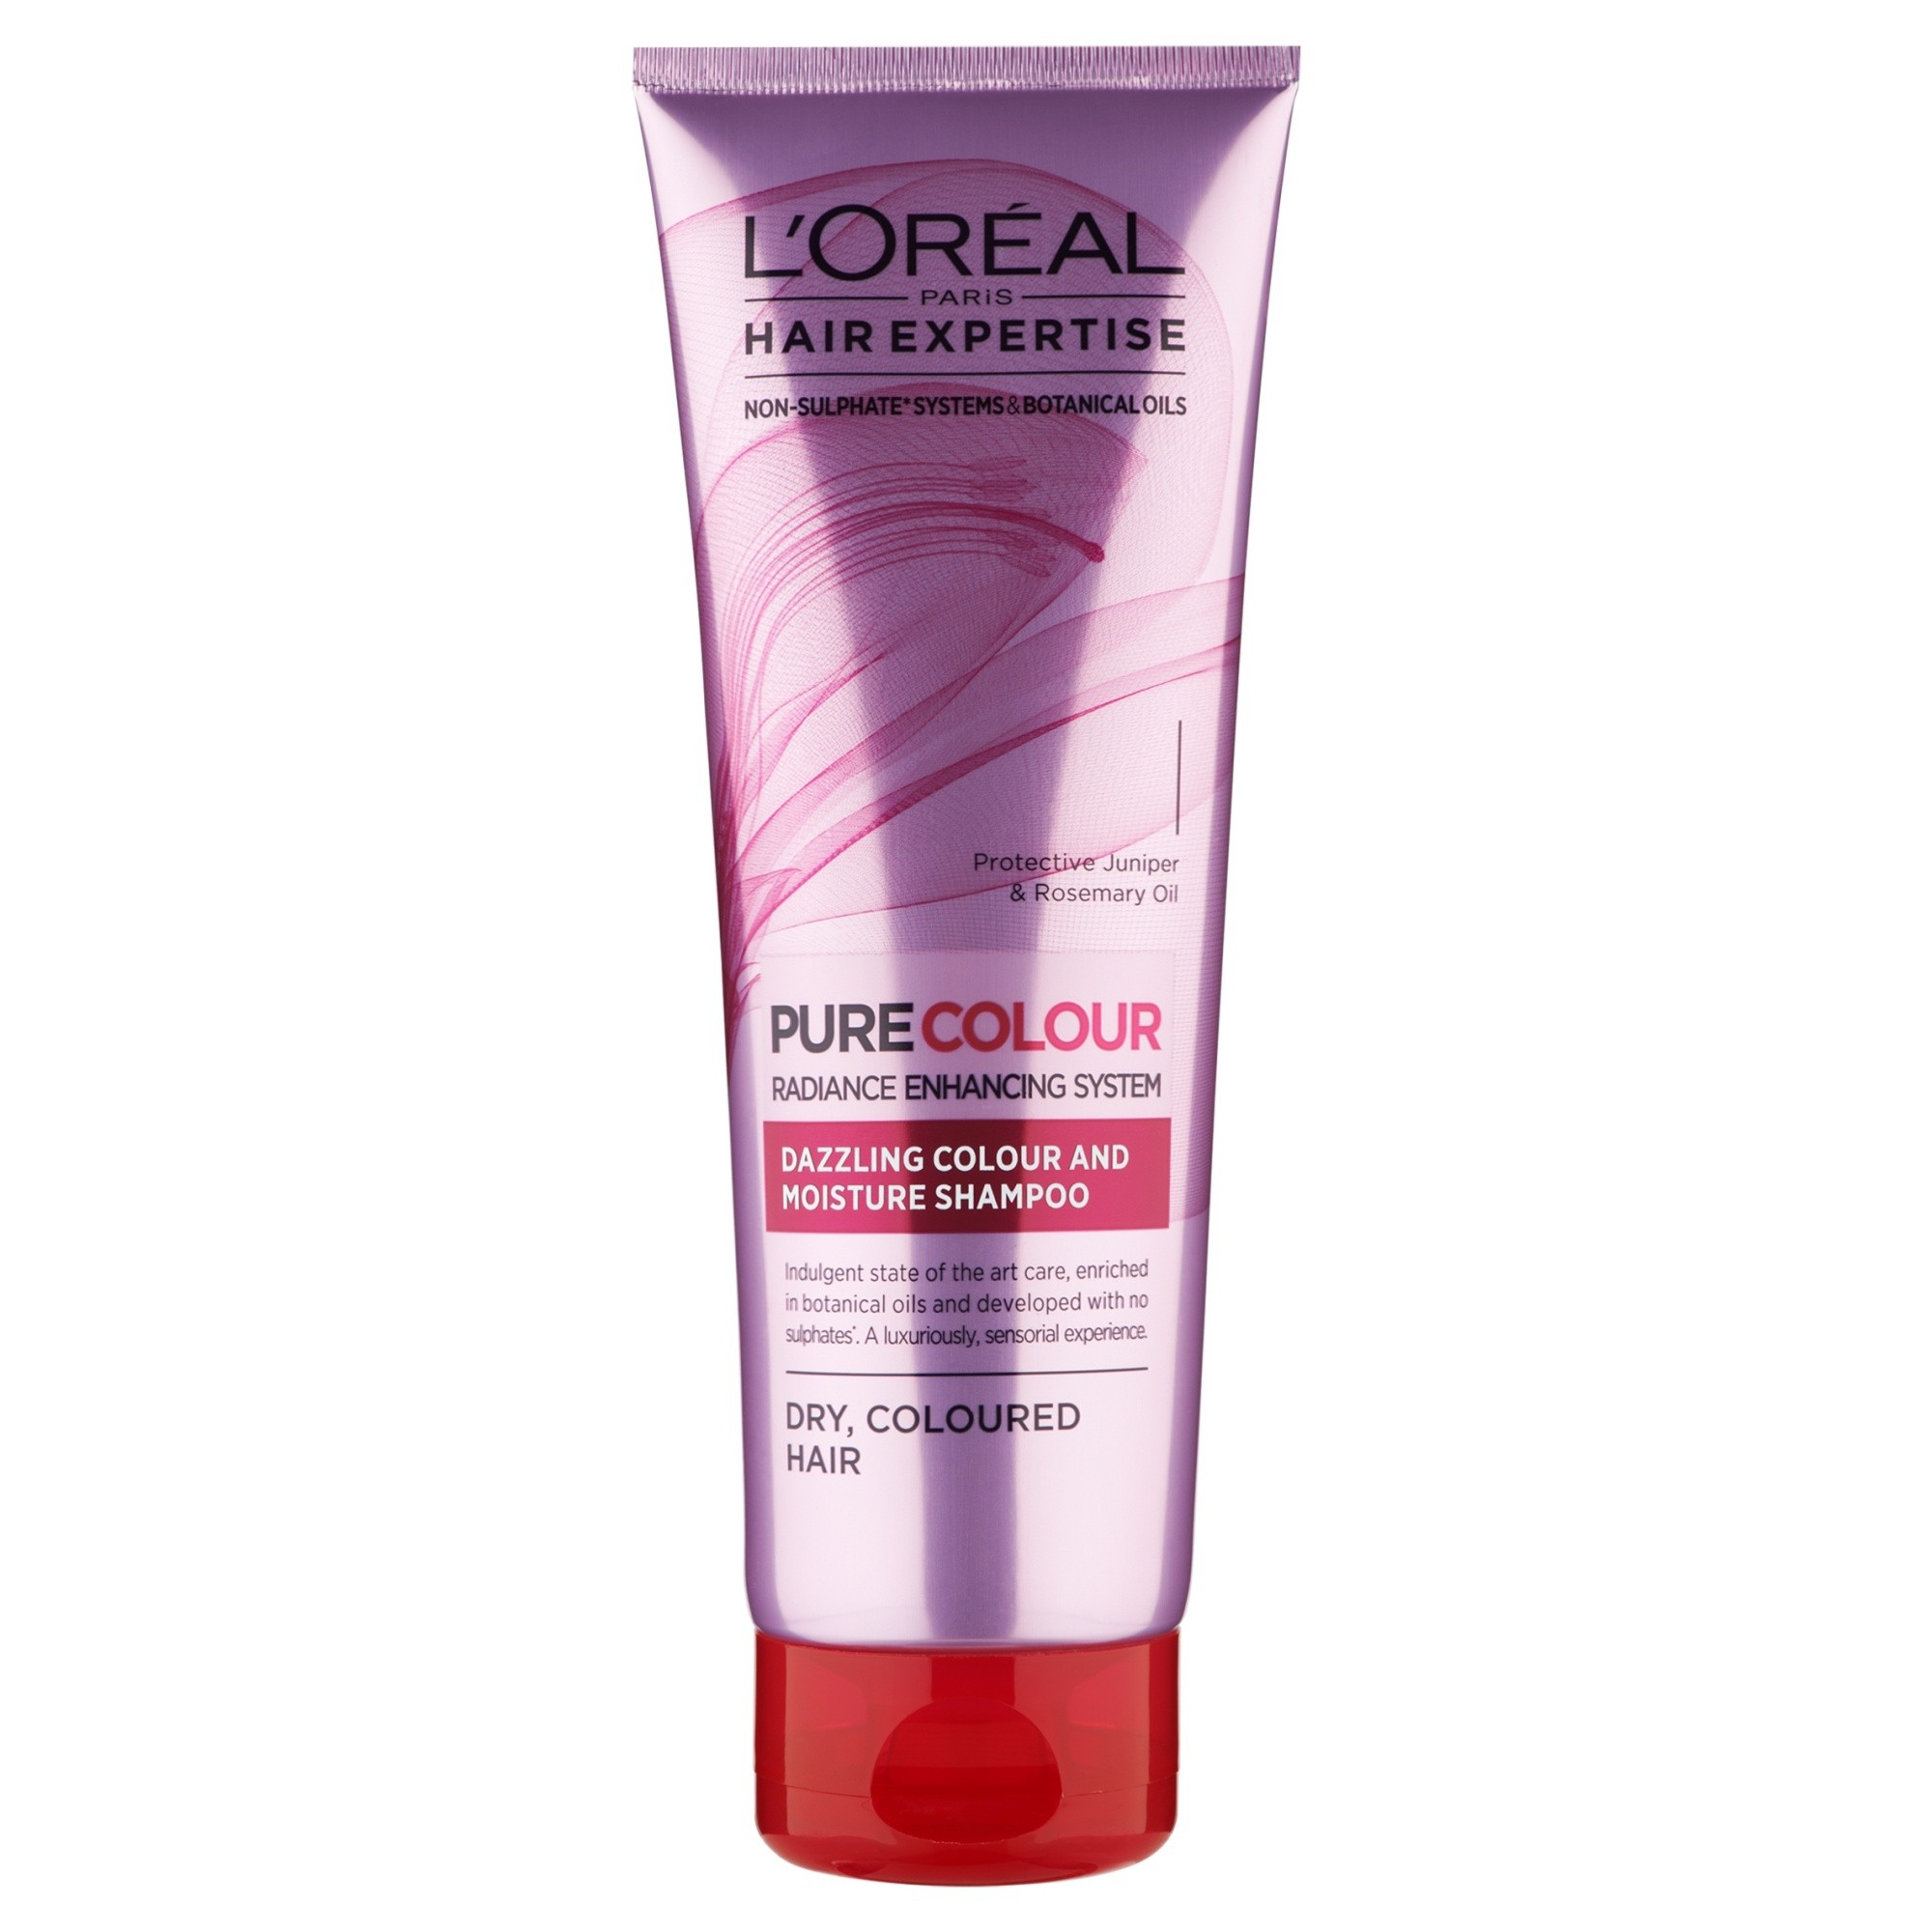 LOreal Paris Hair Expertise Pure Colour Shampoo